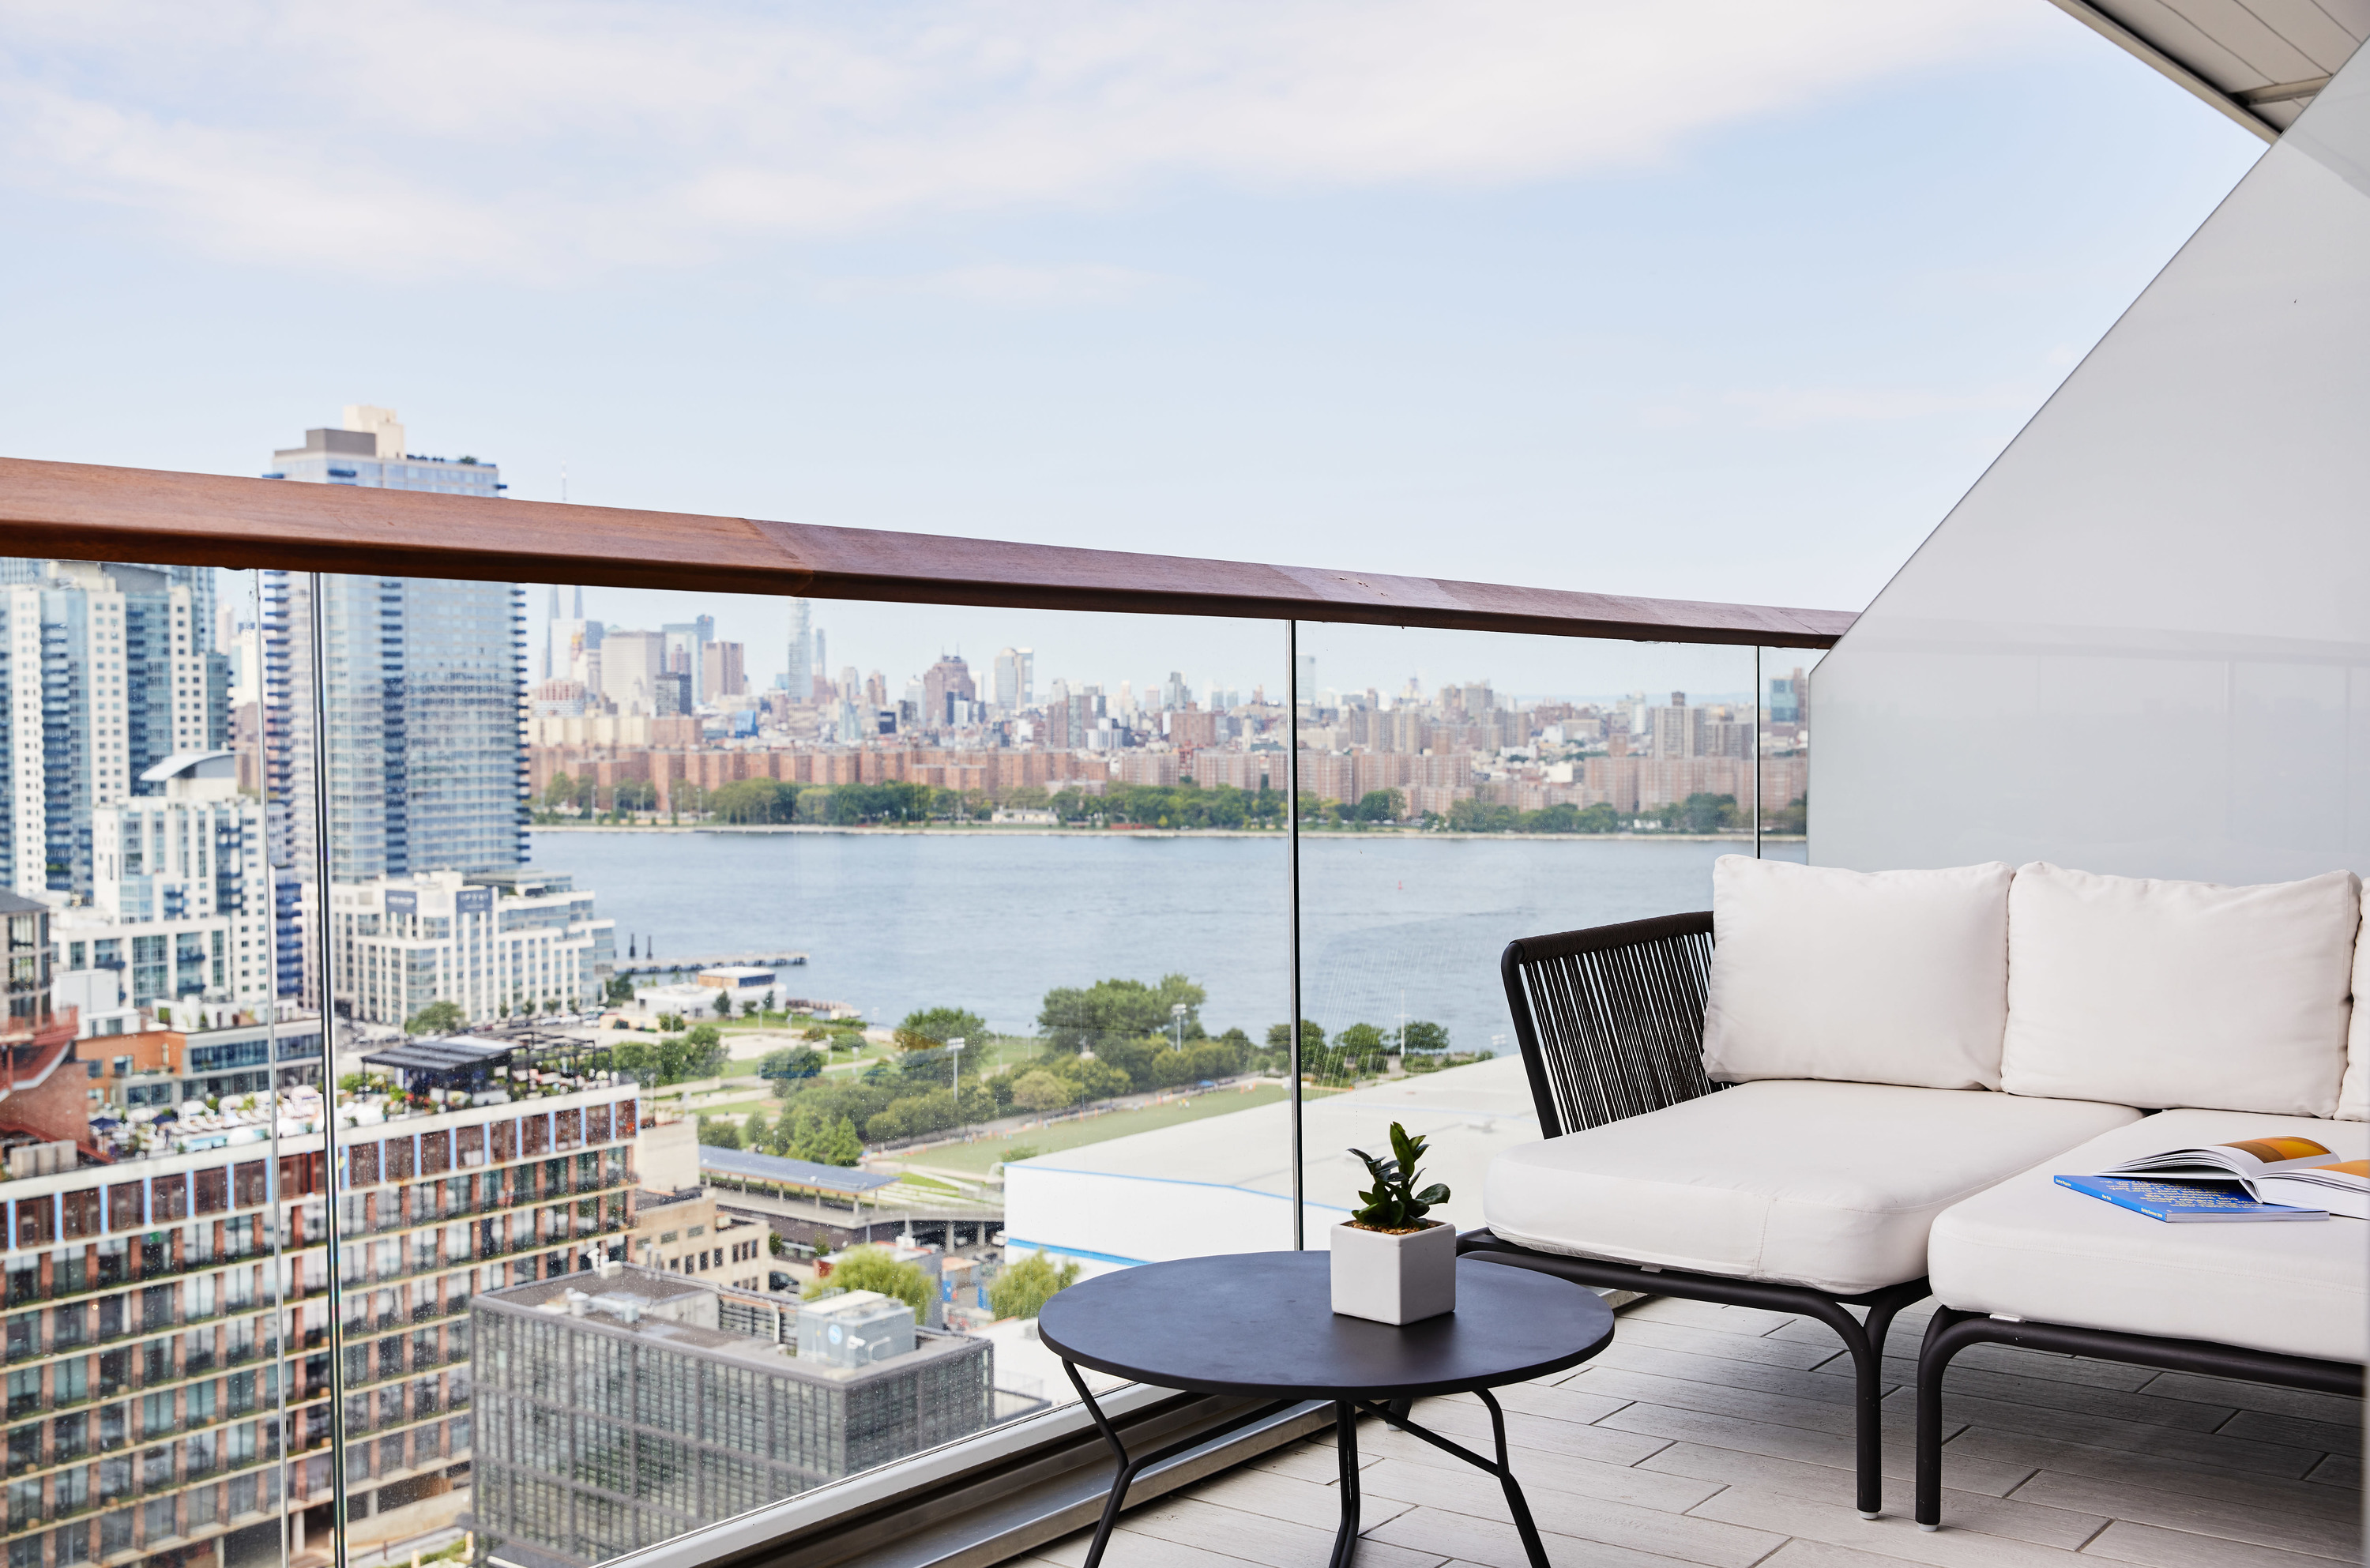 Treat yourself to a luxury quarantine at this Brooklyn hotel